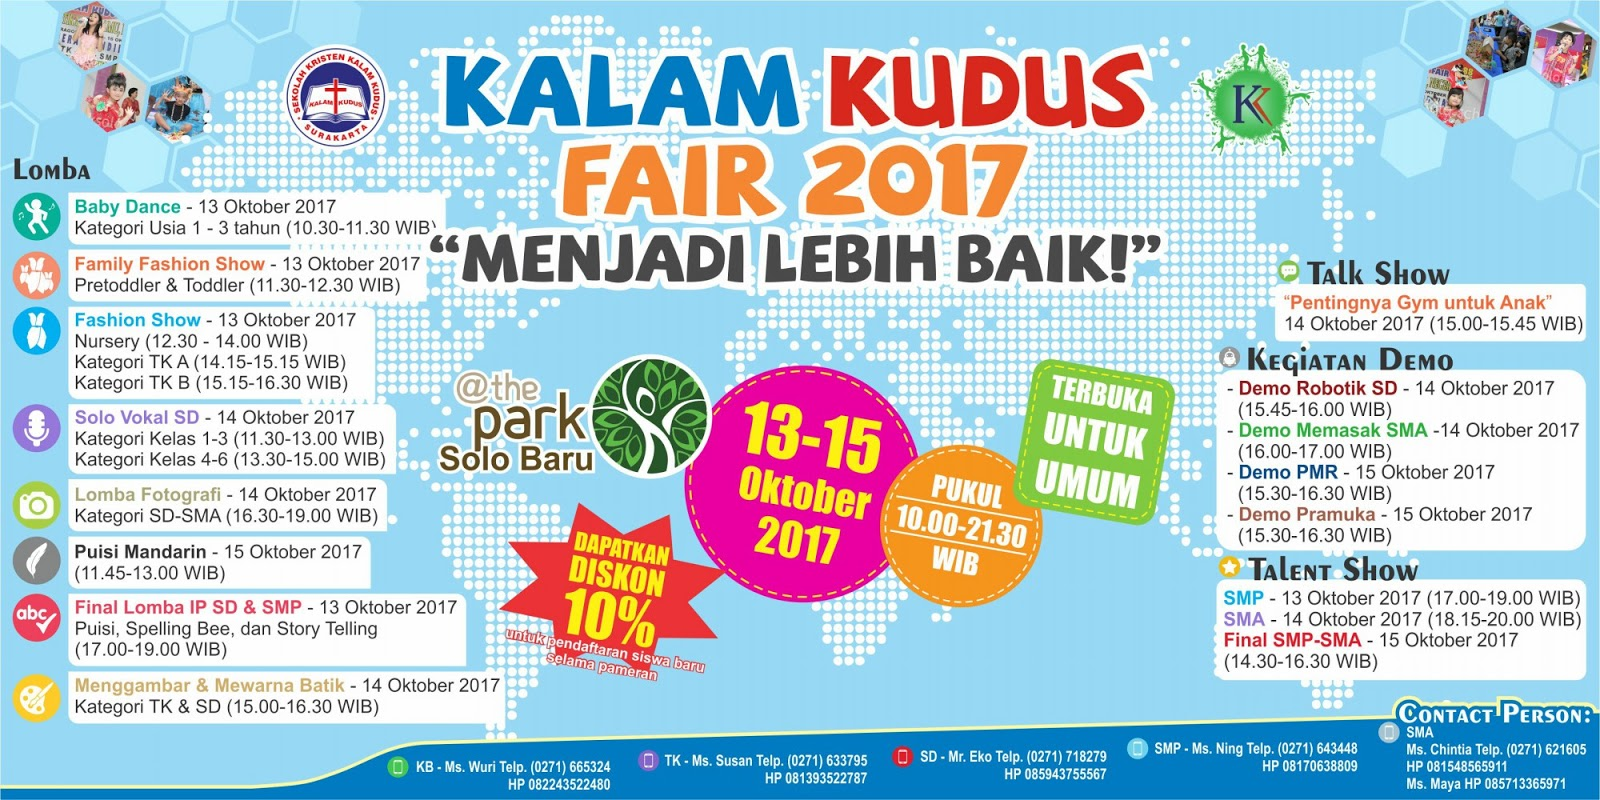 SKKK Surakarta Gelar Kalam Kudus Fair 2017 di The Park Mall